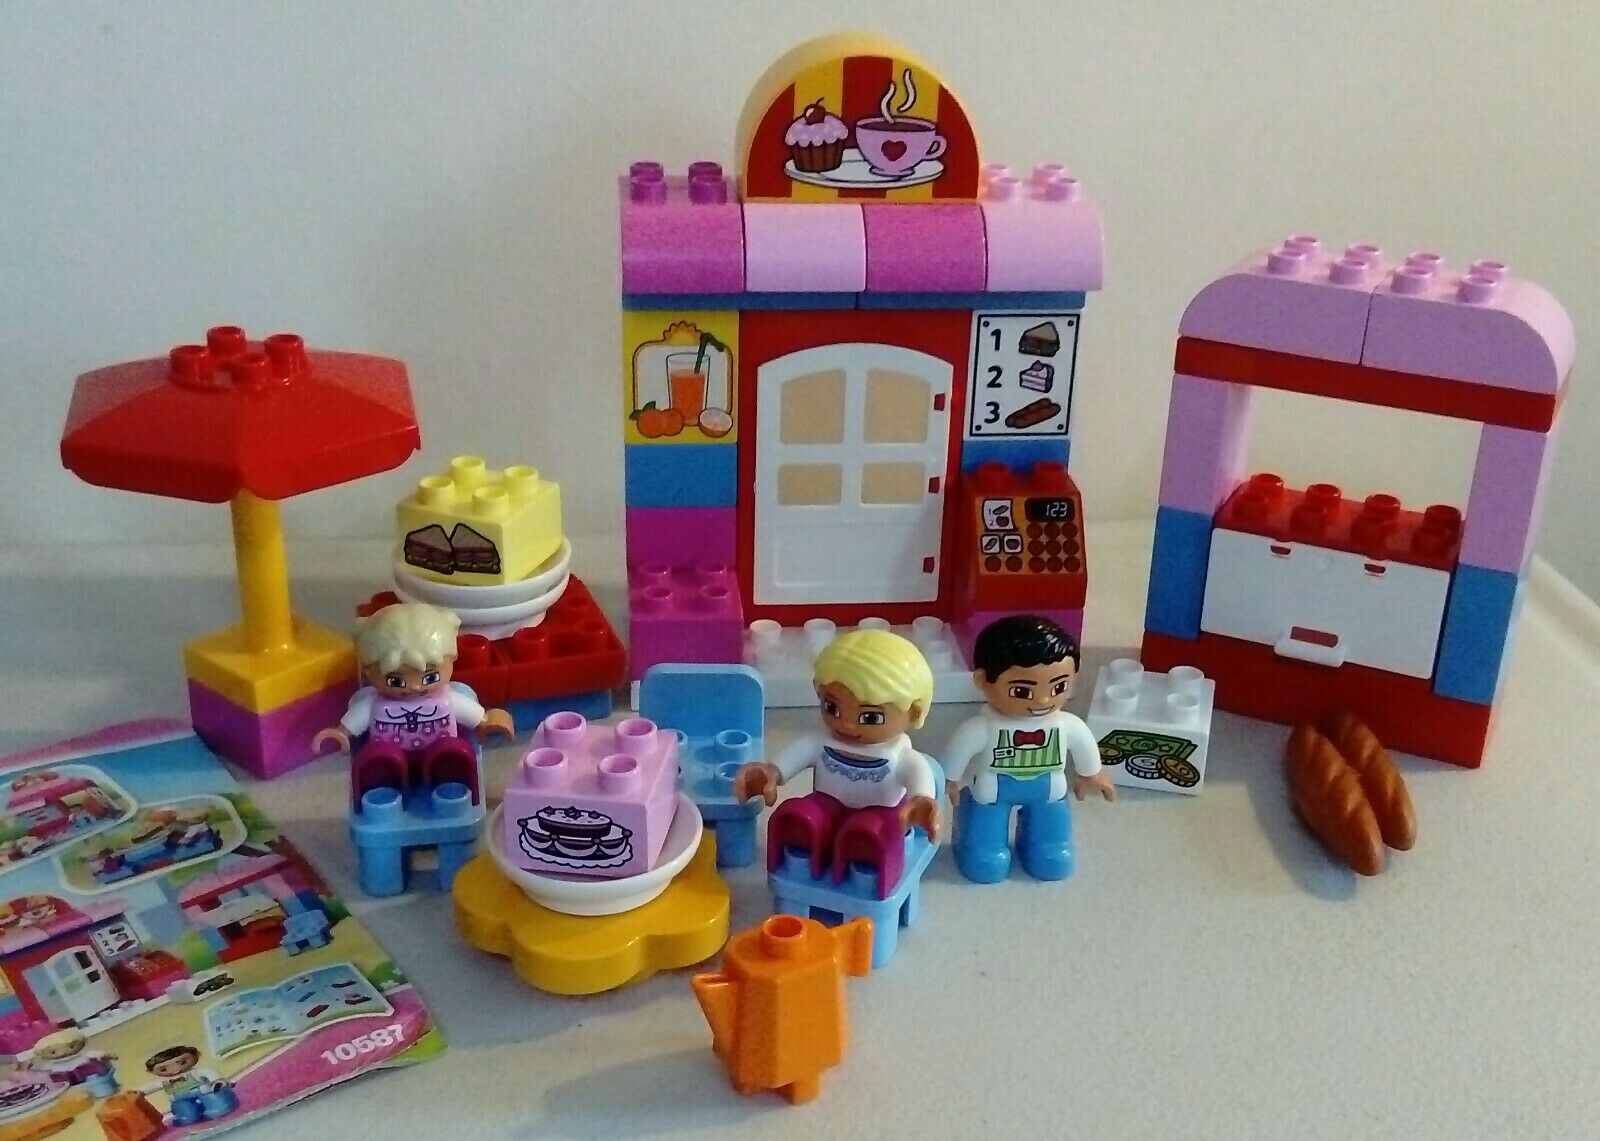 Lego Duplo Town Cafe Set Number 10587 100% Complete with Instructions